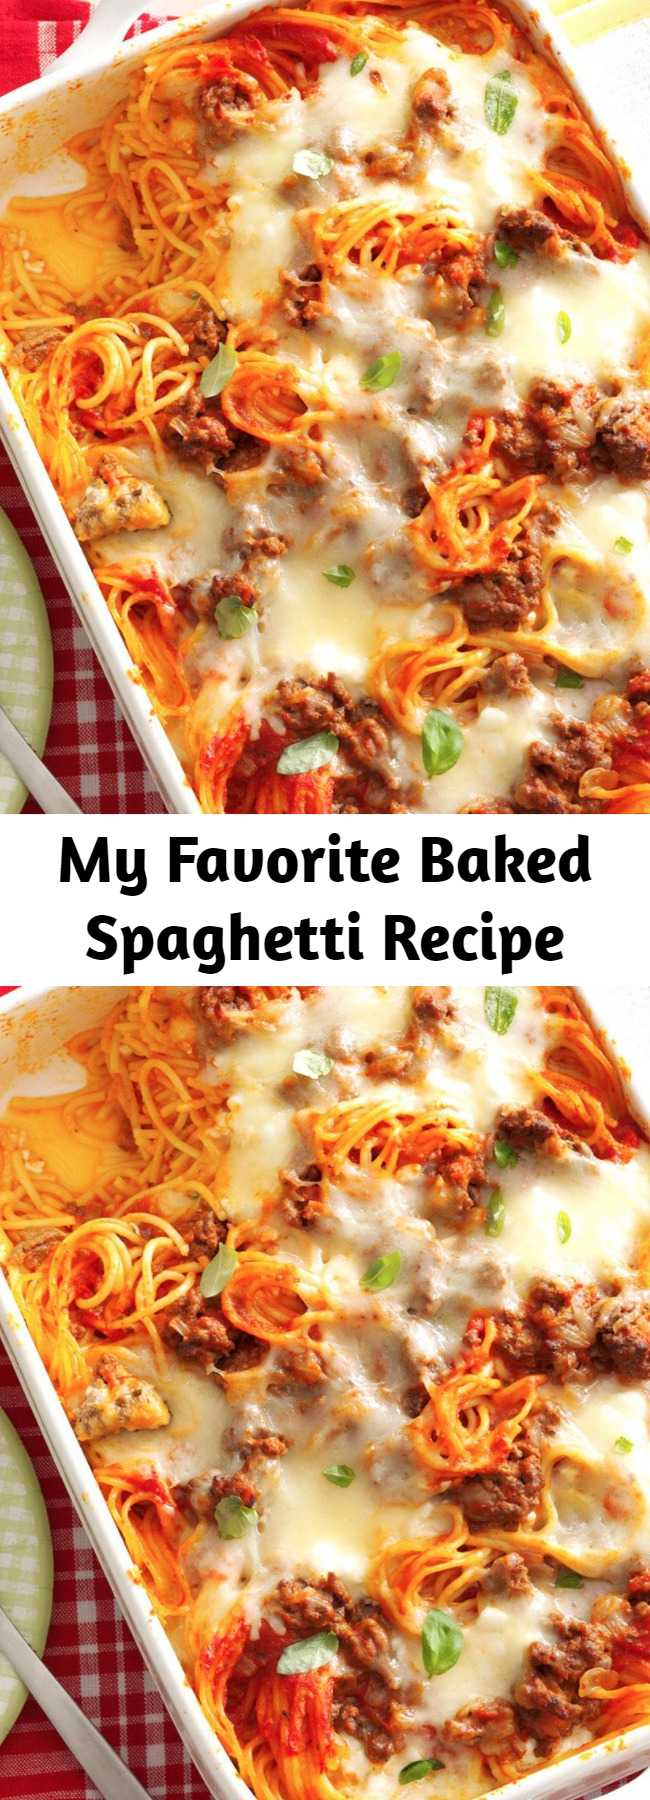 My Favorite Baked Spaghetti Recipe - This yummy baked spaghetti casserole will be requested again and again for potlucks and family gatherings. It's especially popular with my grandchildren, who just love baked spaghetti with all the cheese.